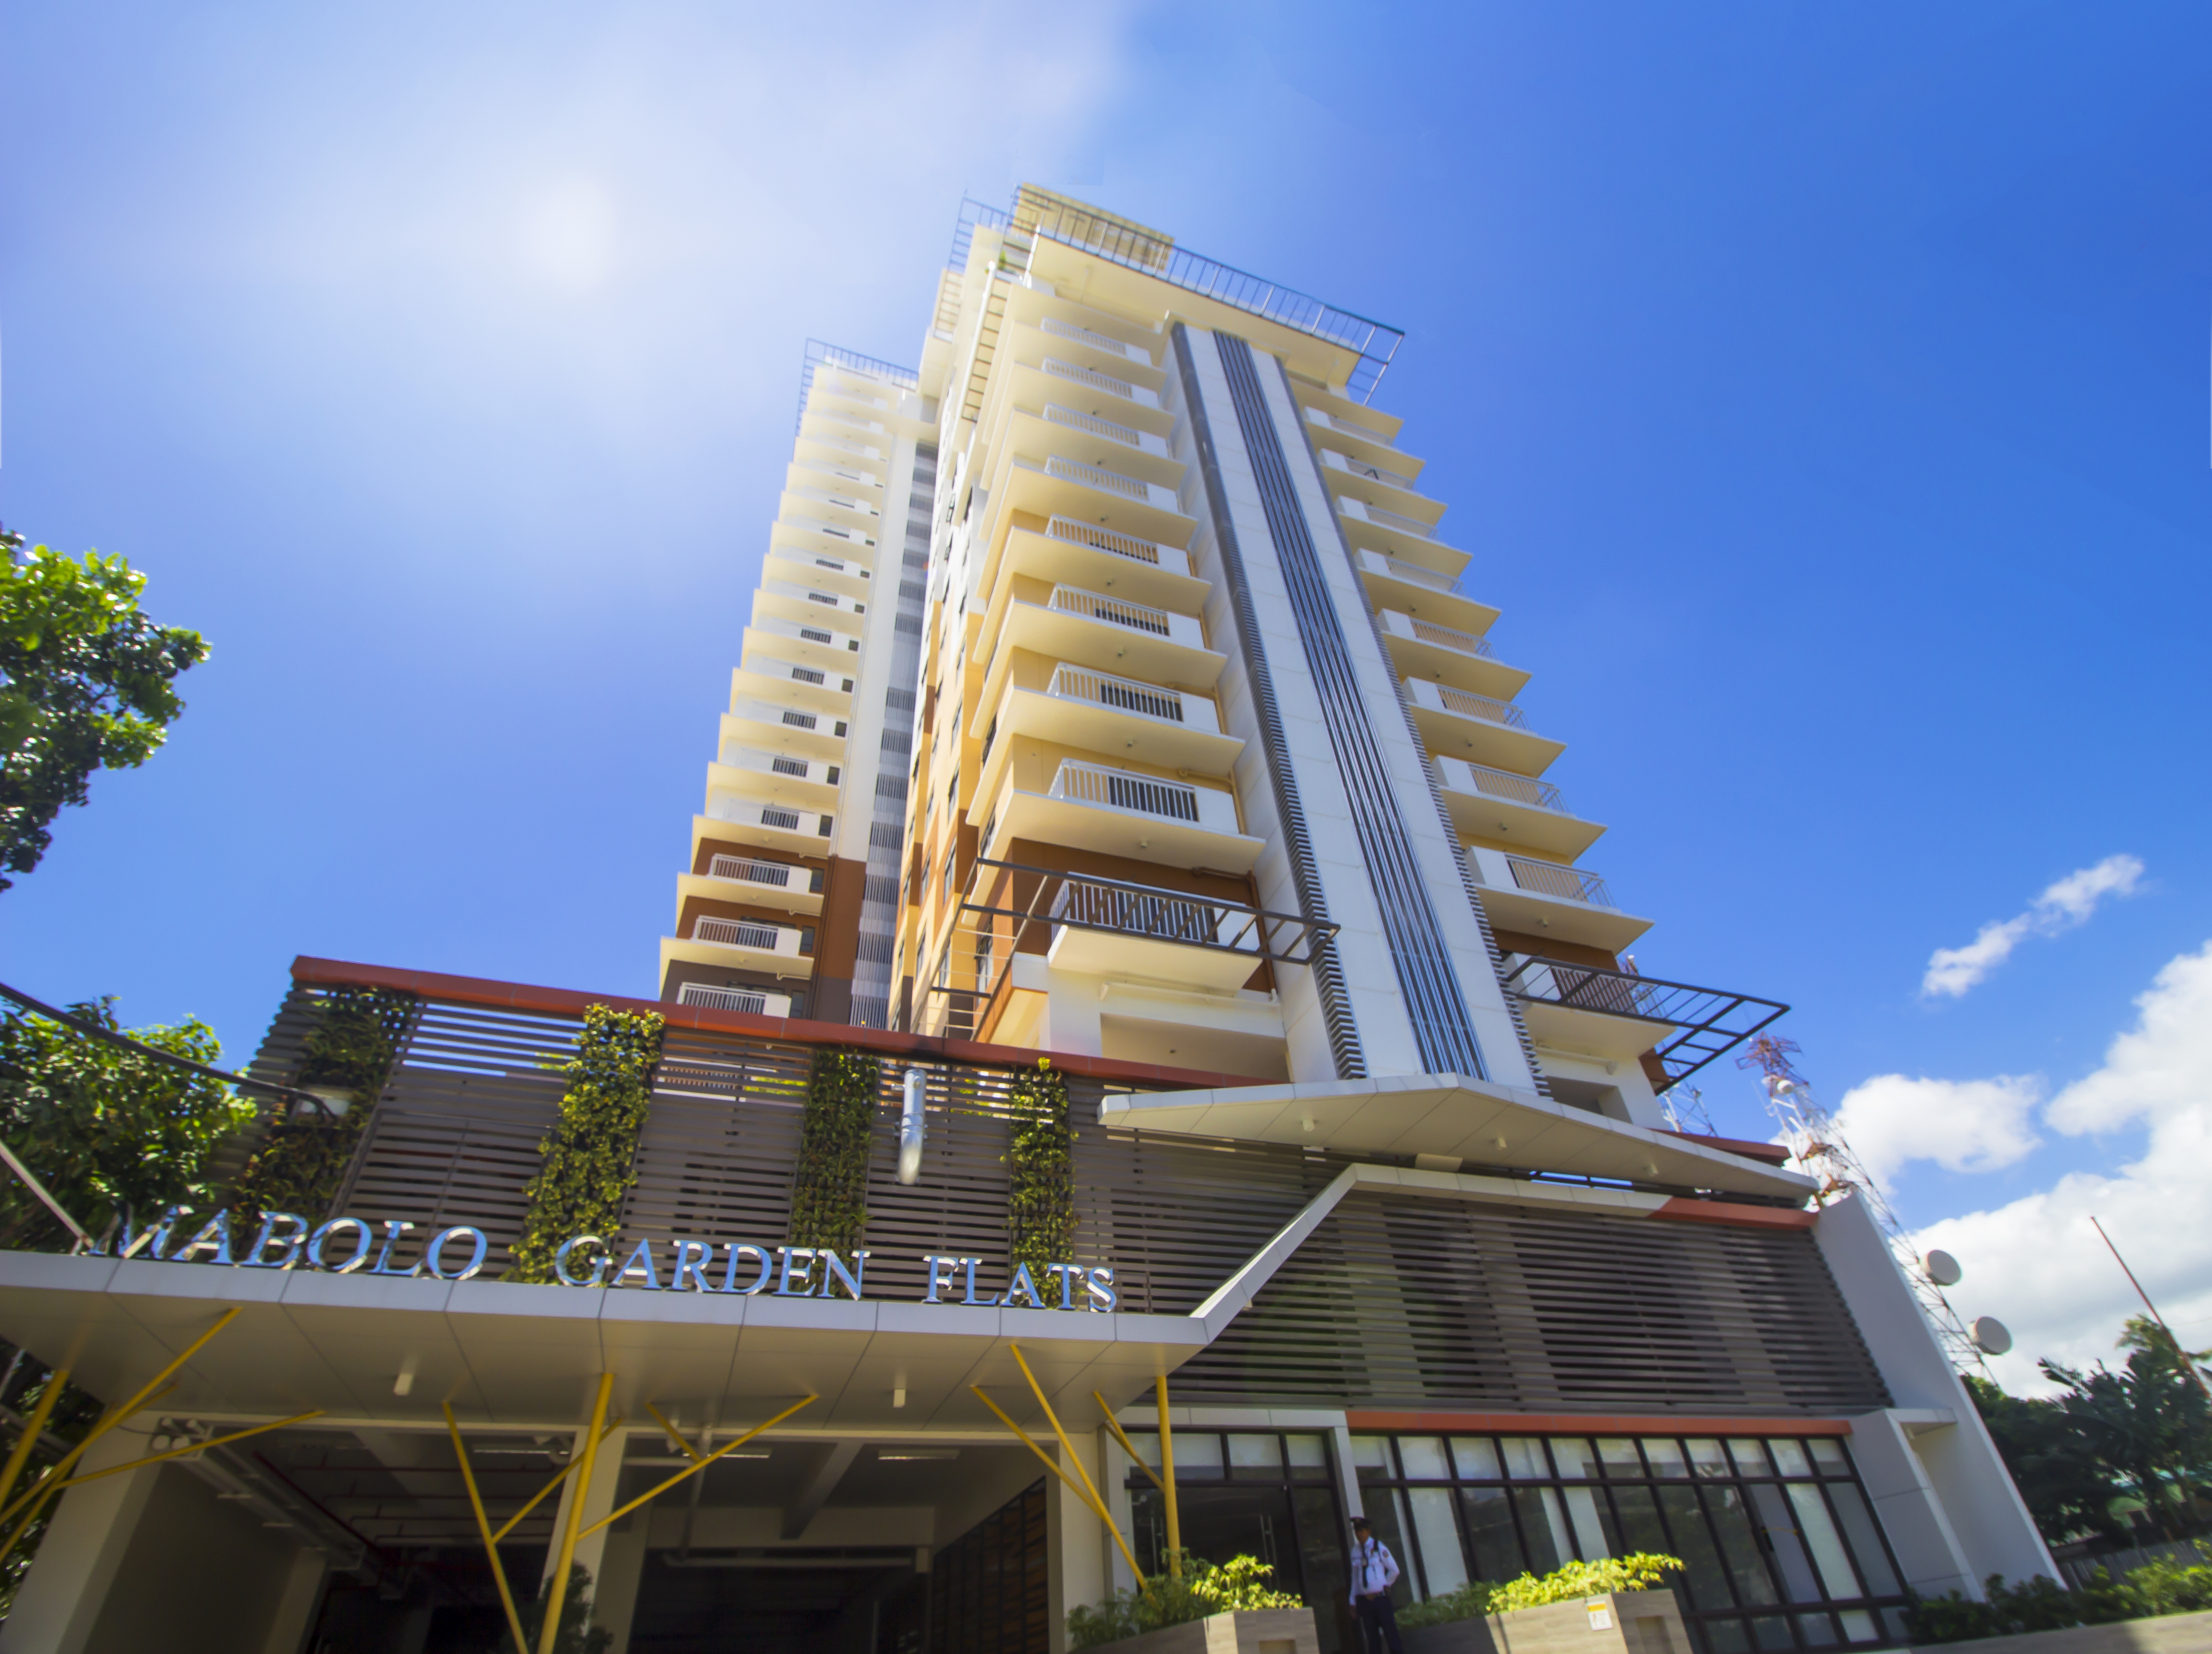 10% down One bedroom Loft Condo For Sale Ready for Occupancy Mabolo Garden Flats